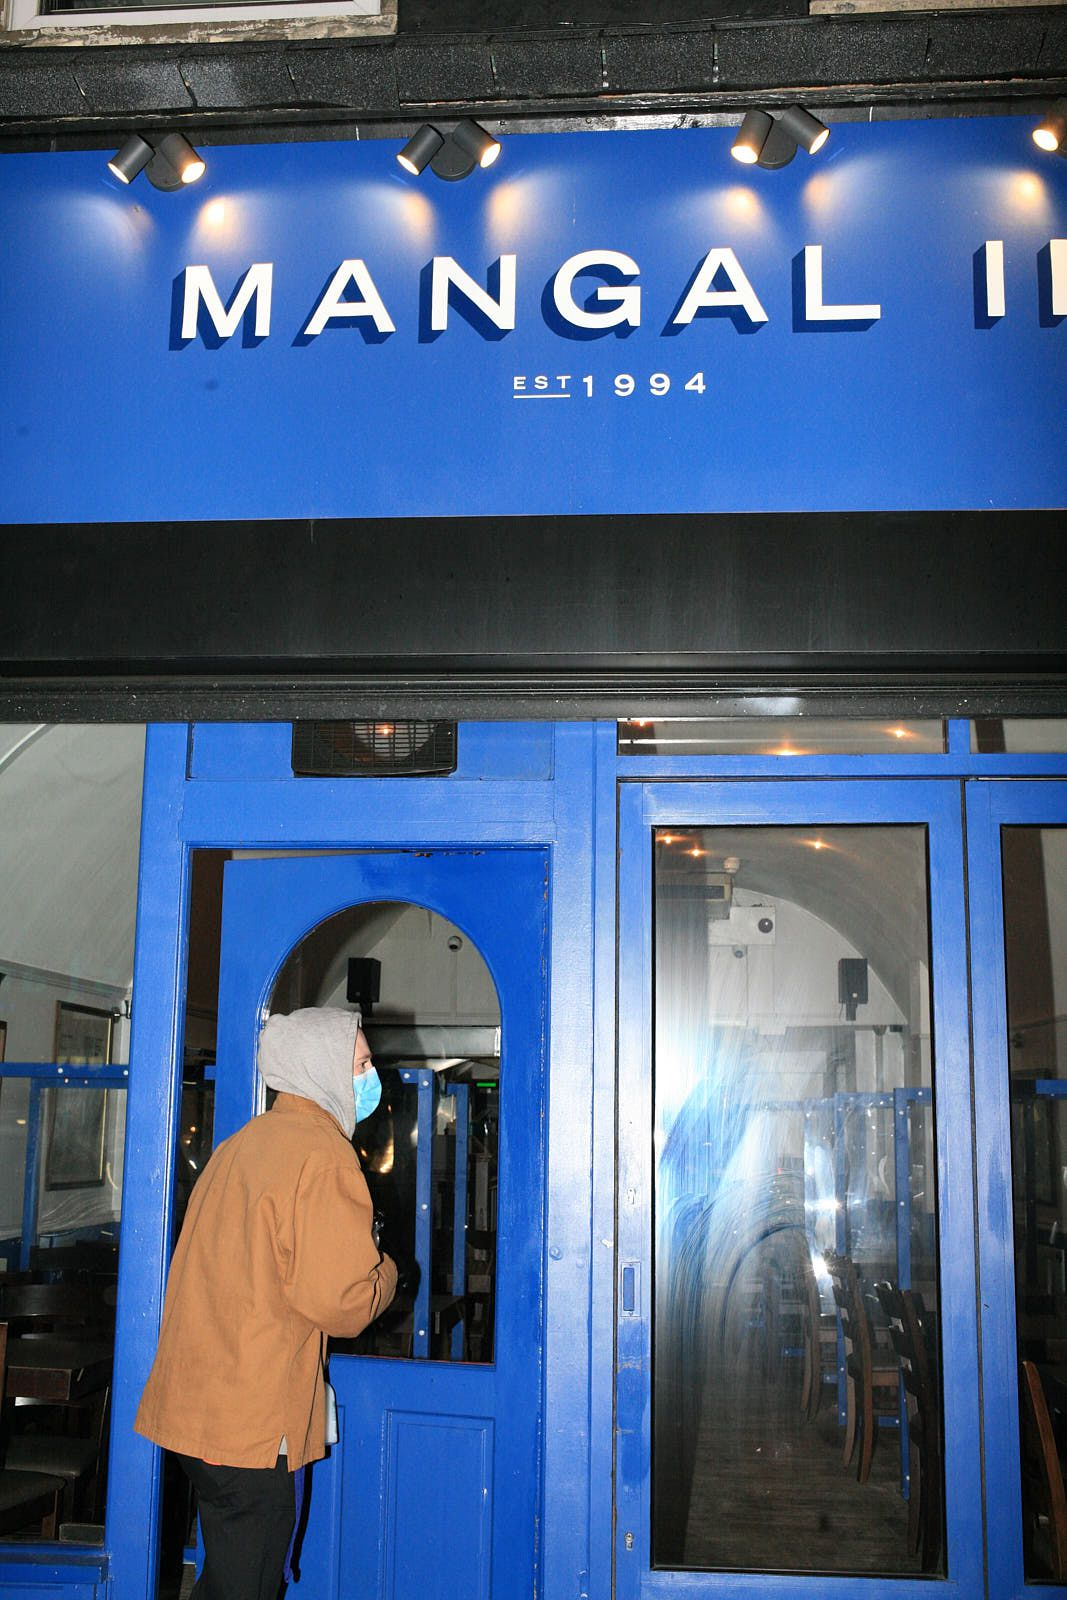 A customer enters Mangal 2 in Dalston after the national coronavirus lockdown in England